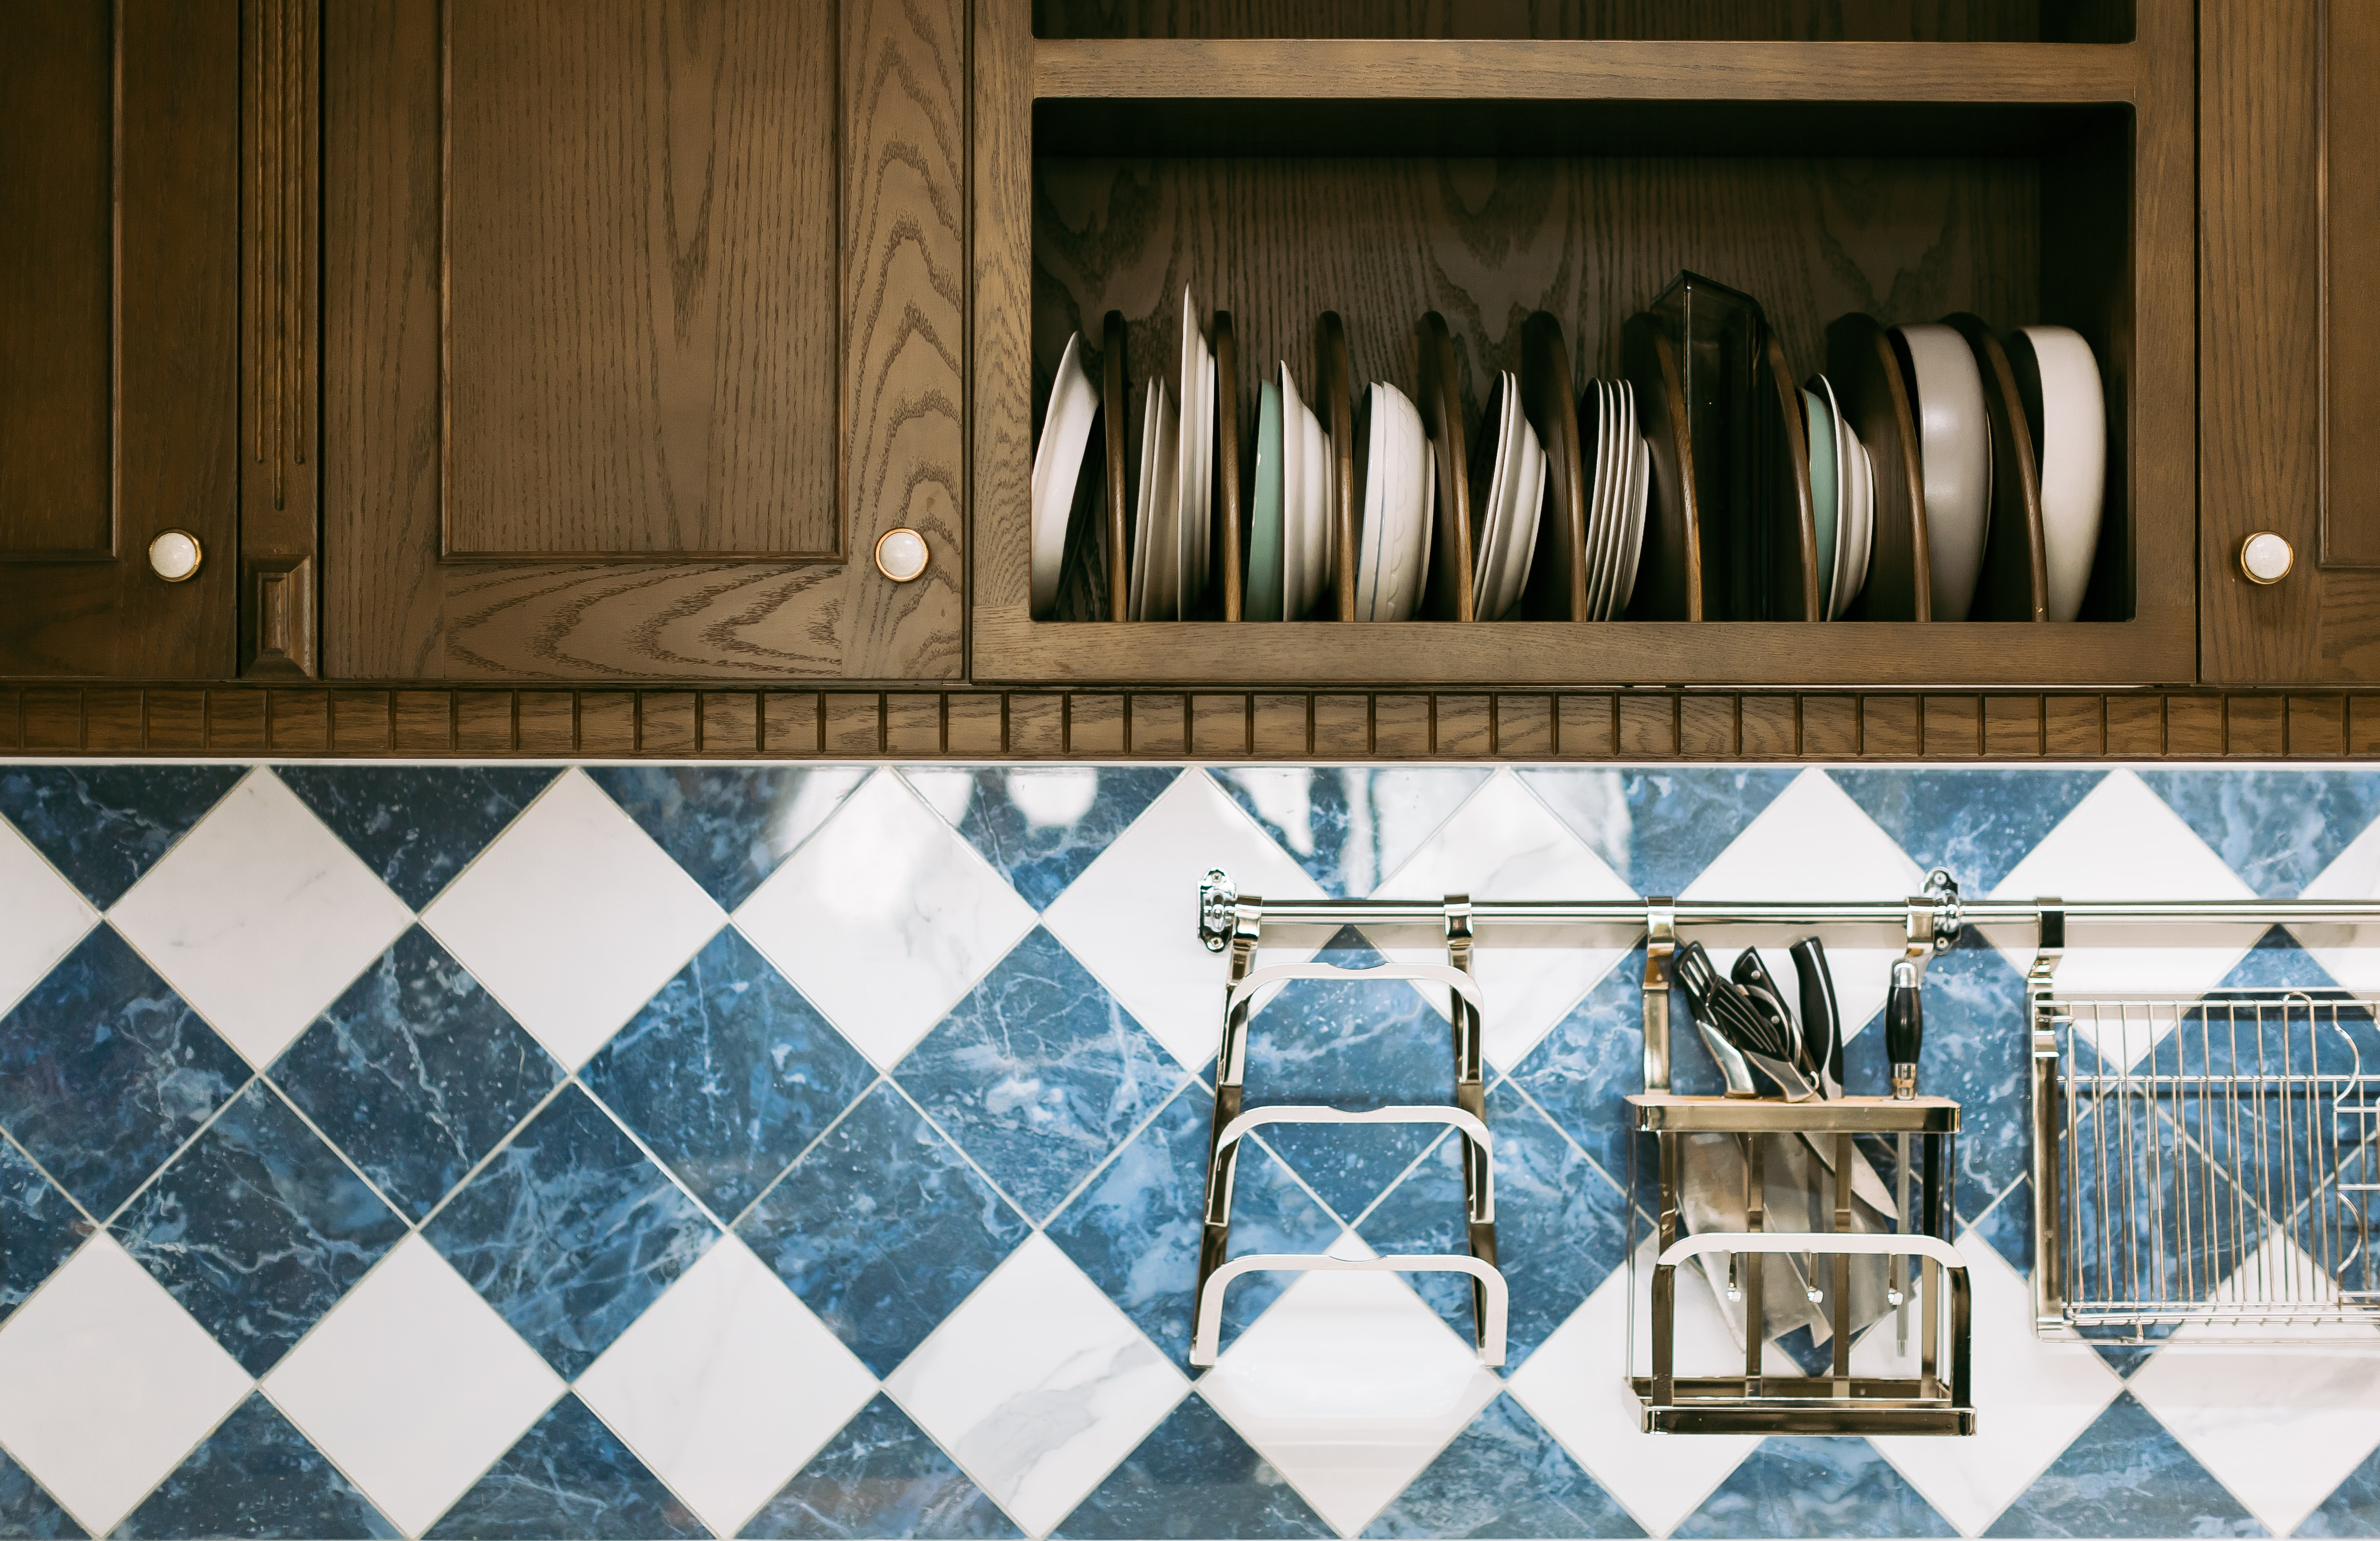 organized plate in kitchen cupboard